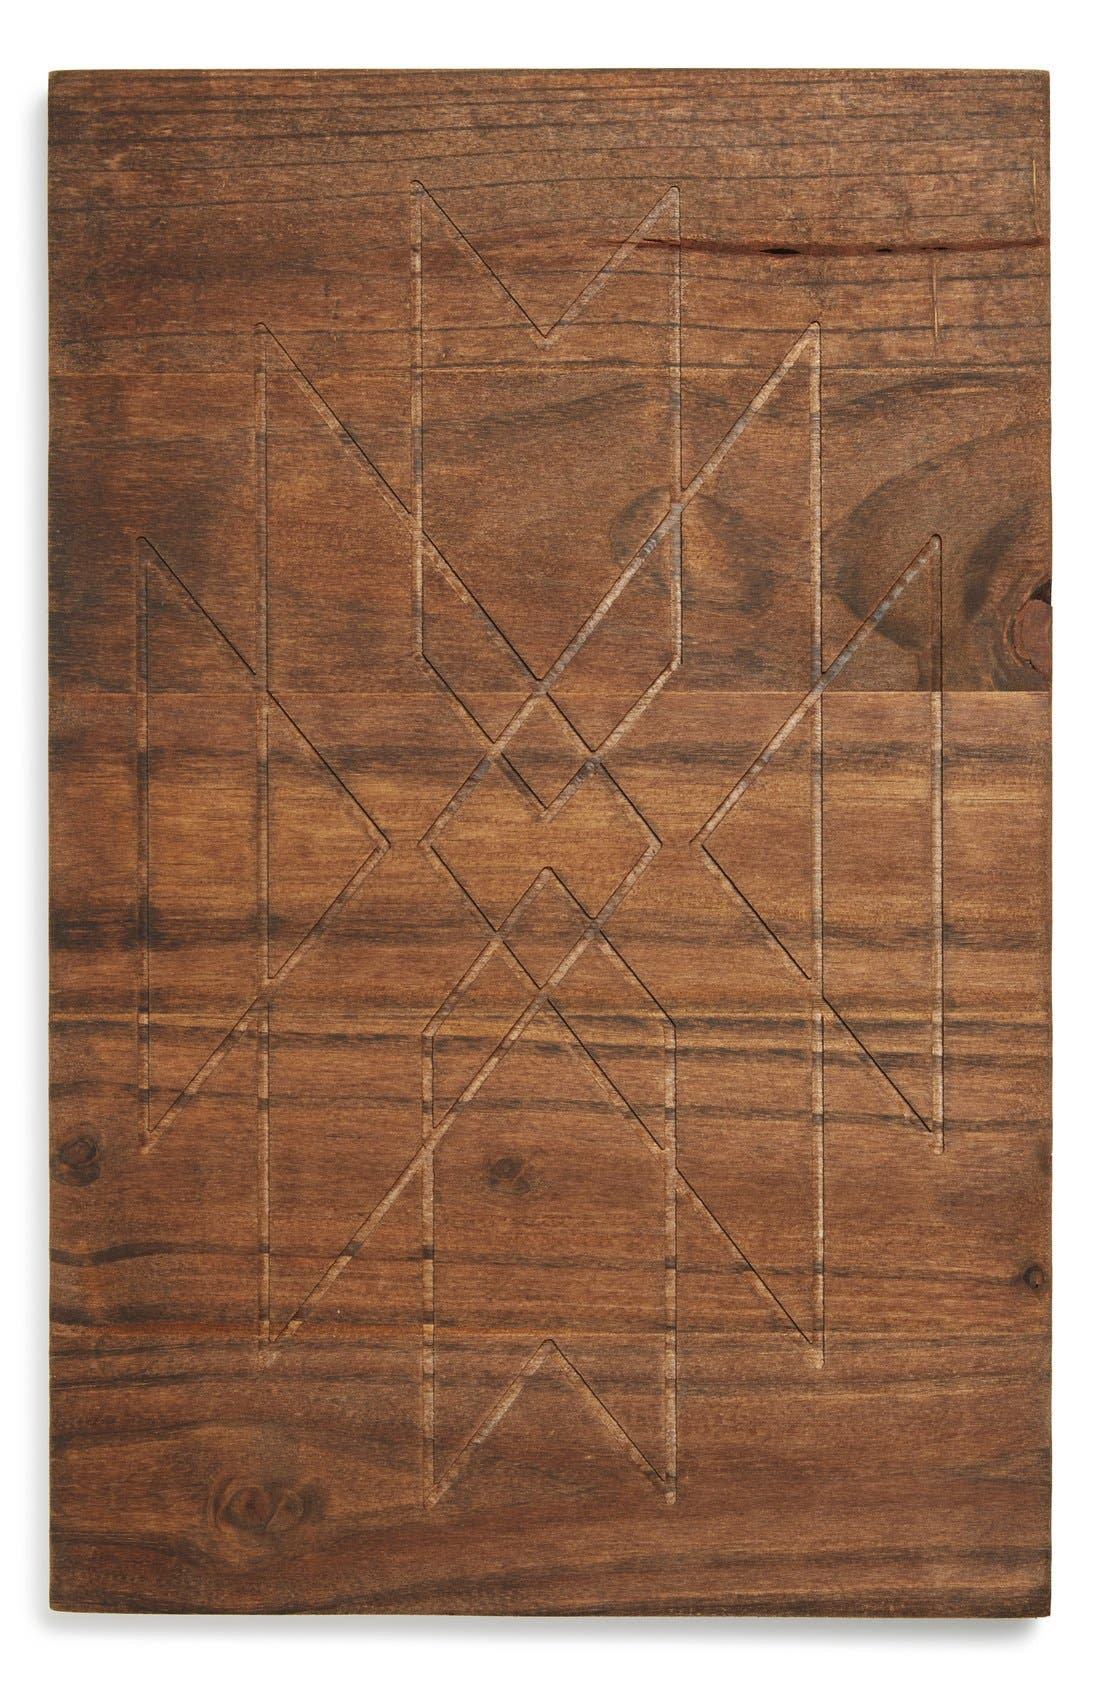 GRACE GRAFFITI Engraved Pine Wood Placemat/Cutting Board, Main, color, 200